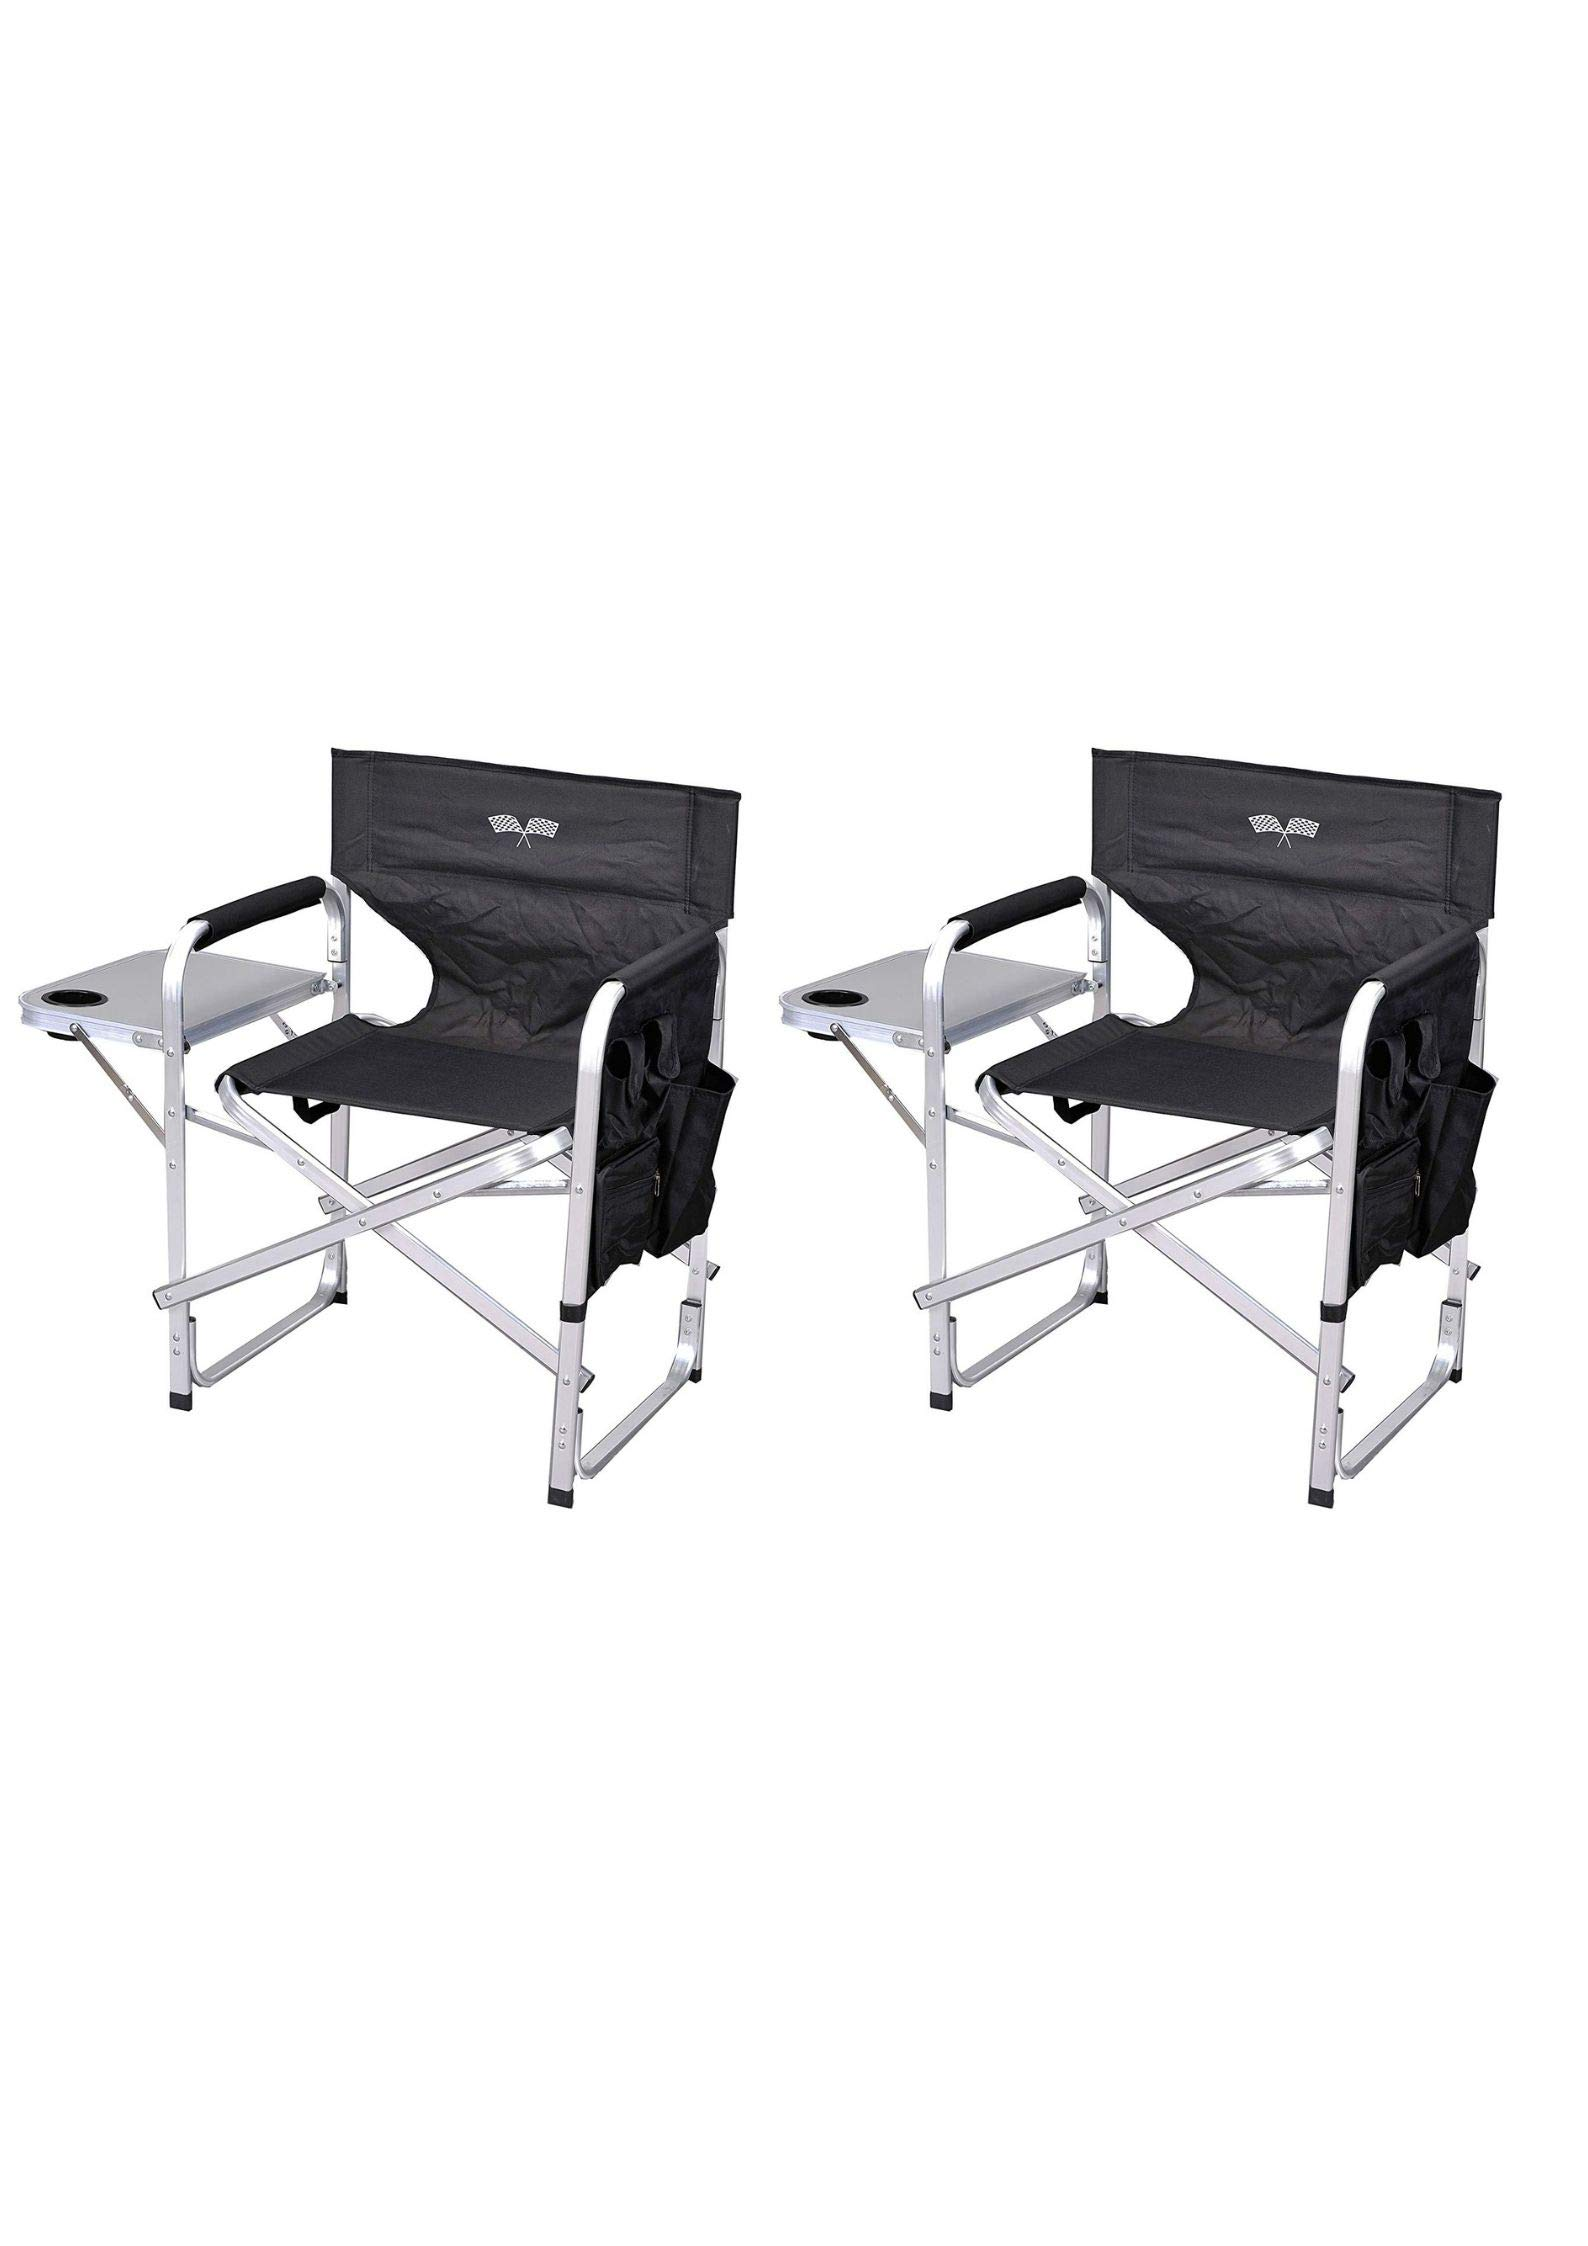 Stylish Camping Outdoor Folding Director's Chair w/Full Back - (Black/Flag/Pack of 2) by Stylish Camping